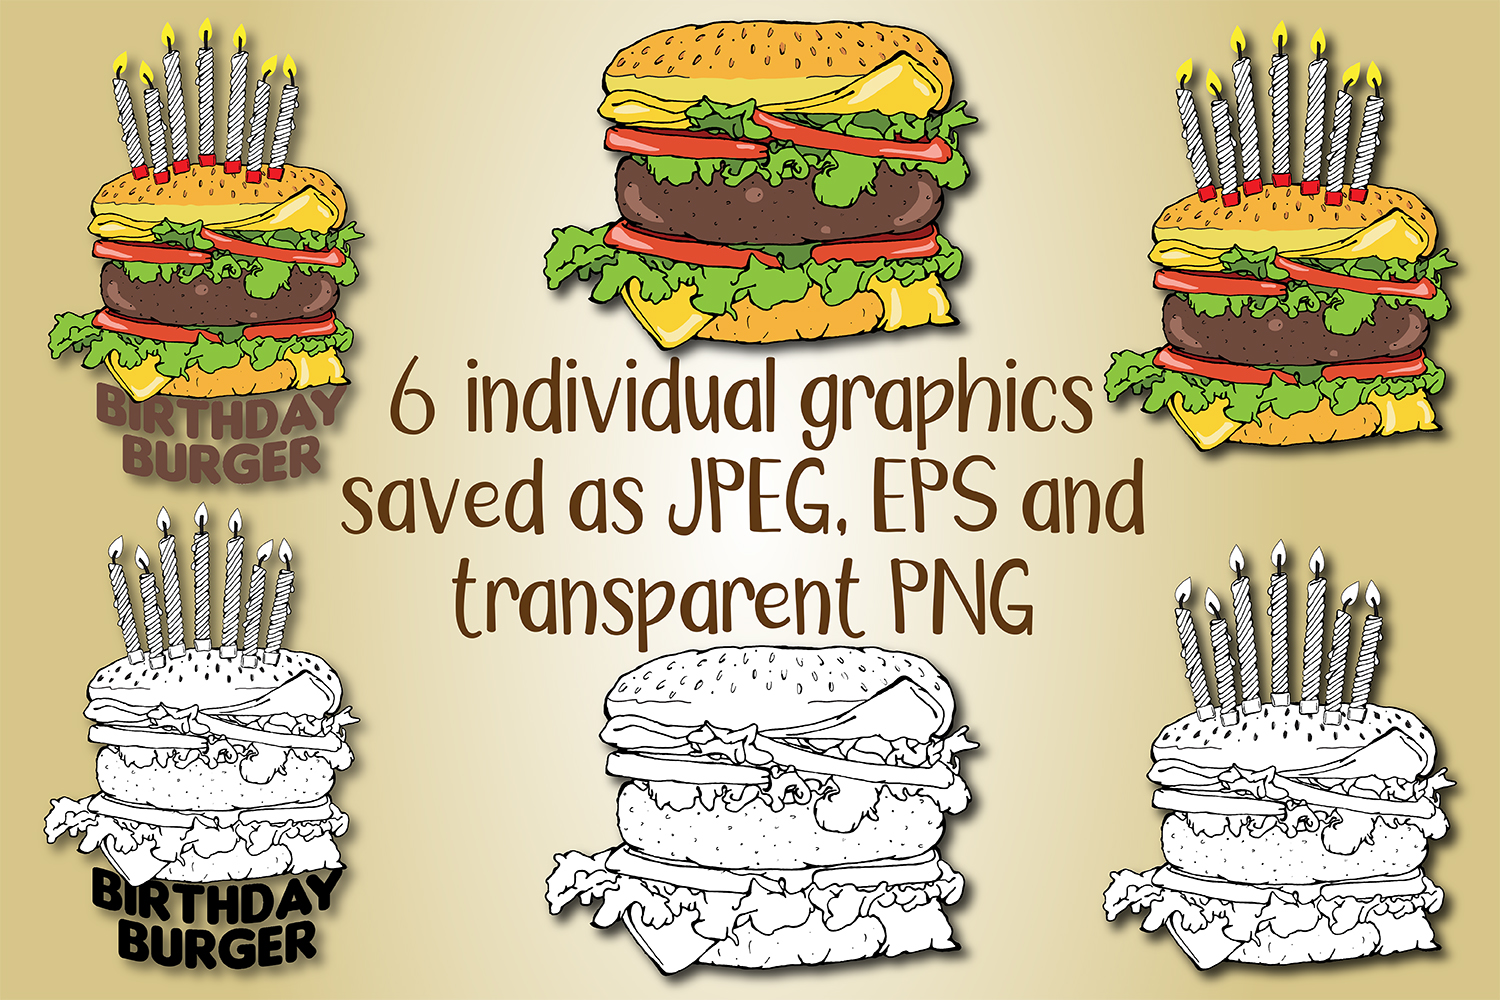 Cheeseburger Birthday Cake with Candles Hand Drawn Clipart example image 2